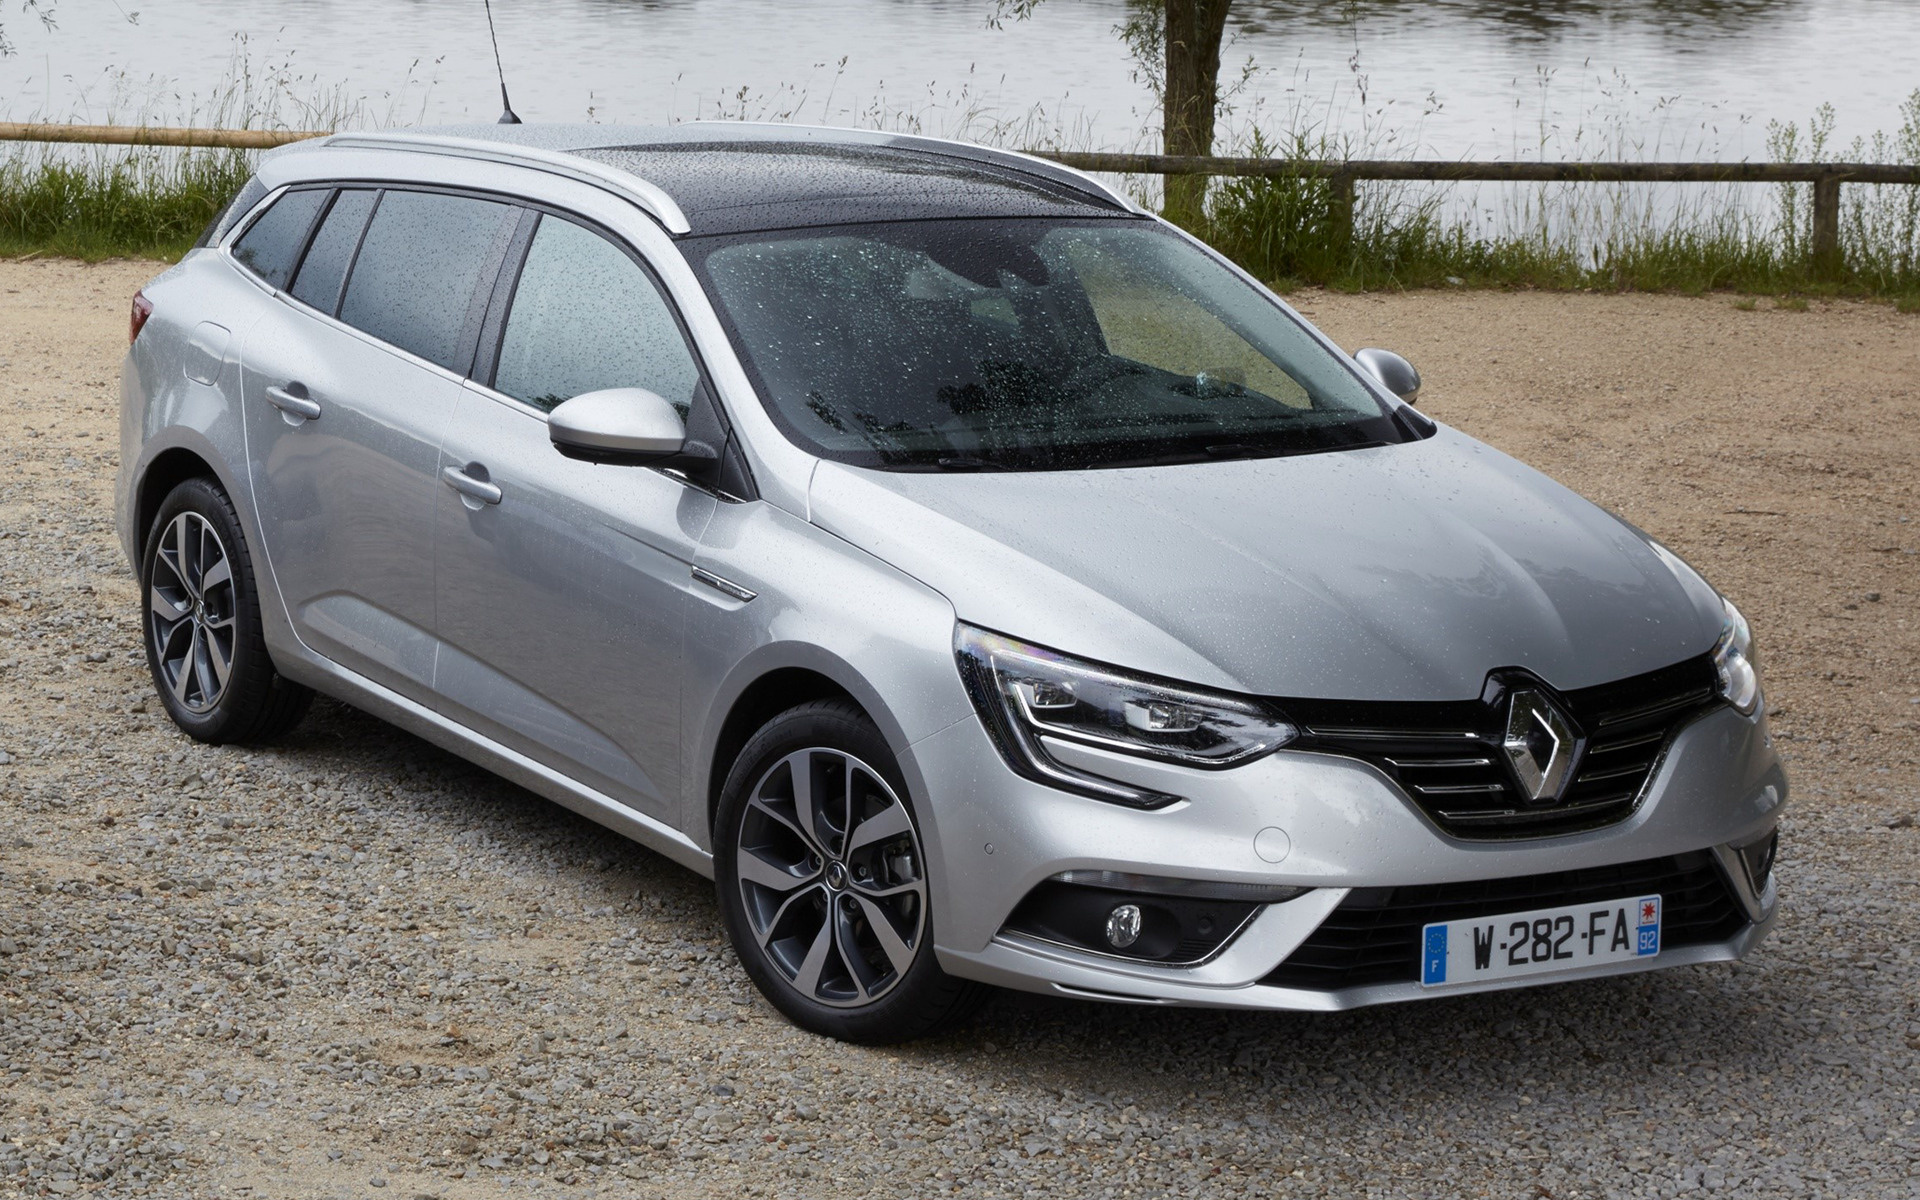 Renault Megane Estate Car Wallpaper on 2015 Dodge Sedan